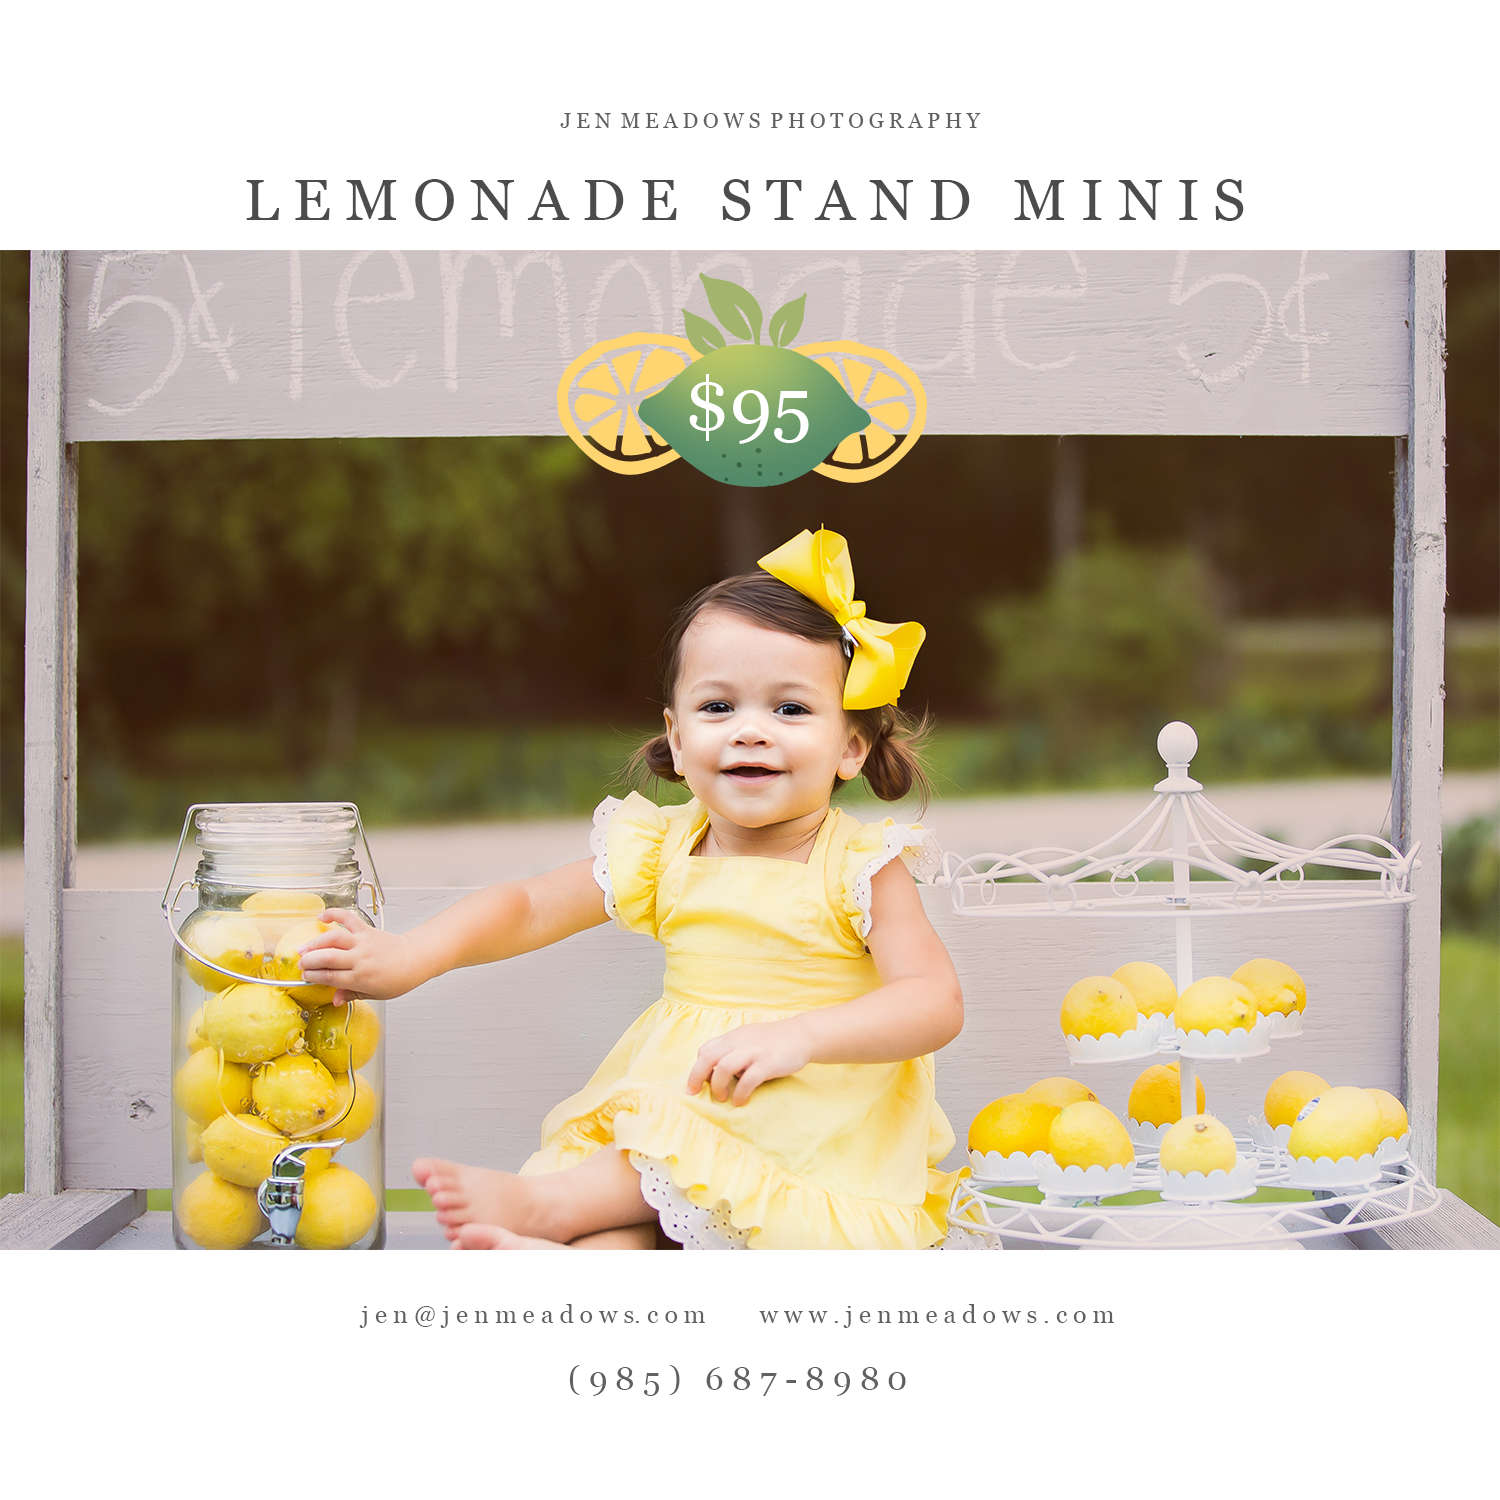 Did you book your Lemonade Stand Mini in Slidell, LA yet??